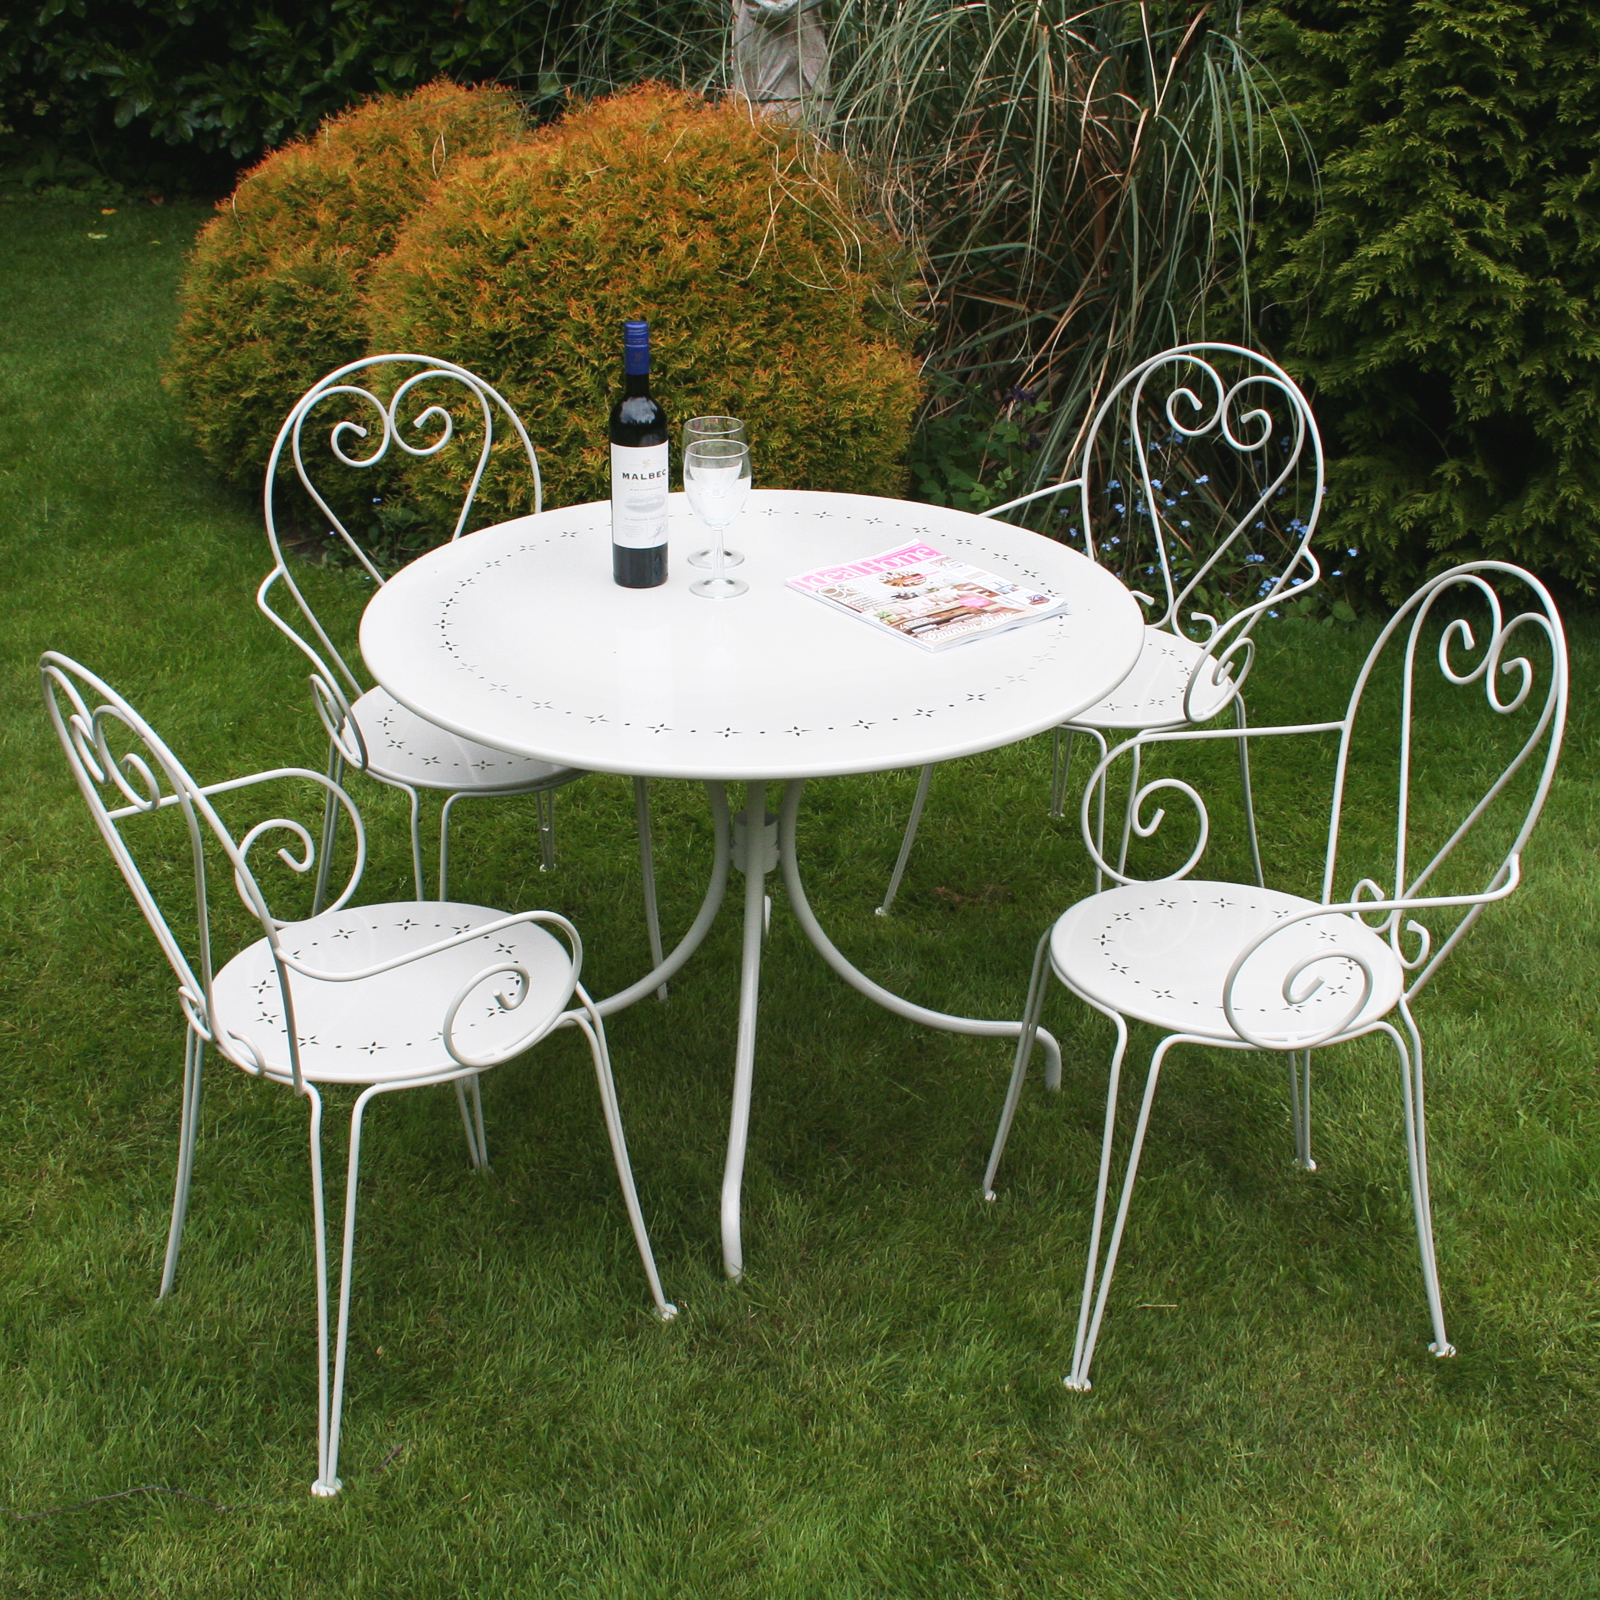 Bentley Garden Furniture Steel Heart 5 Piece Shabby Chic Set - Cream ...